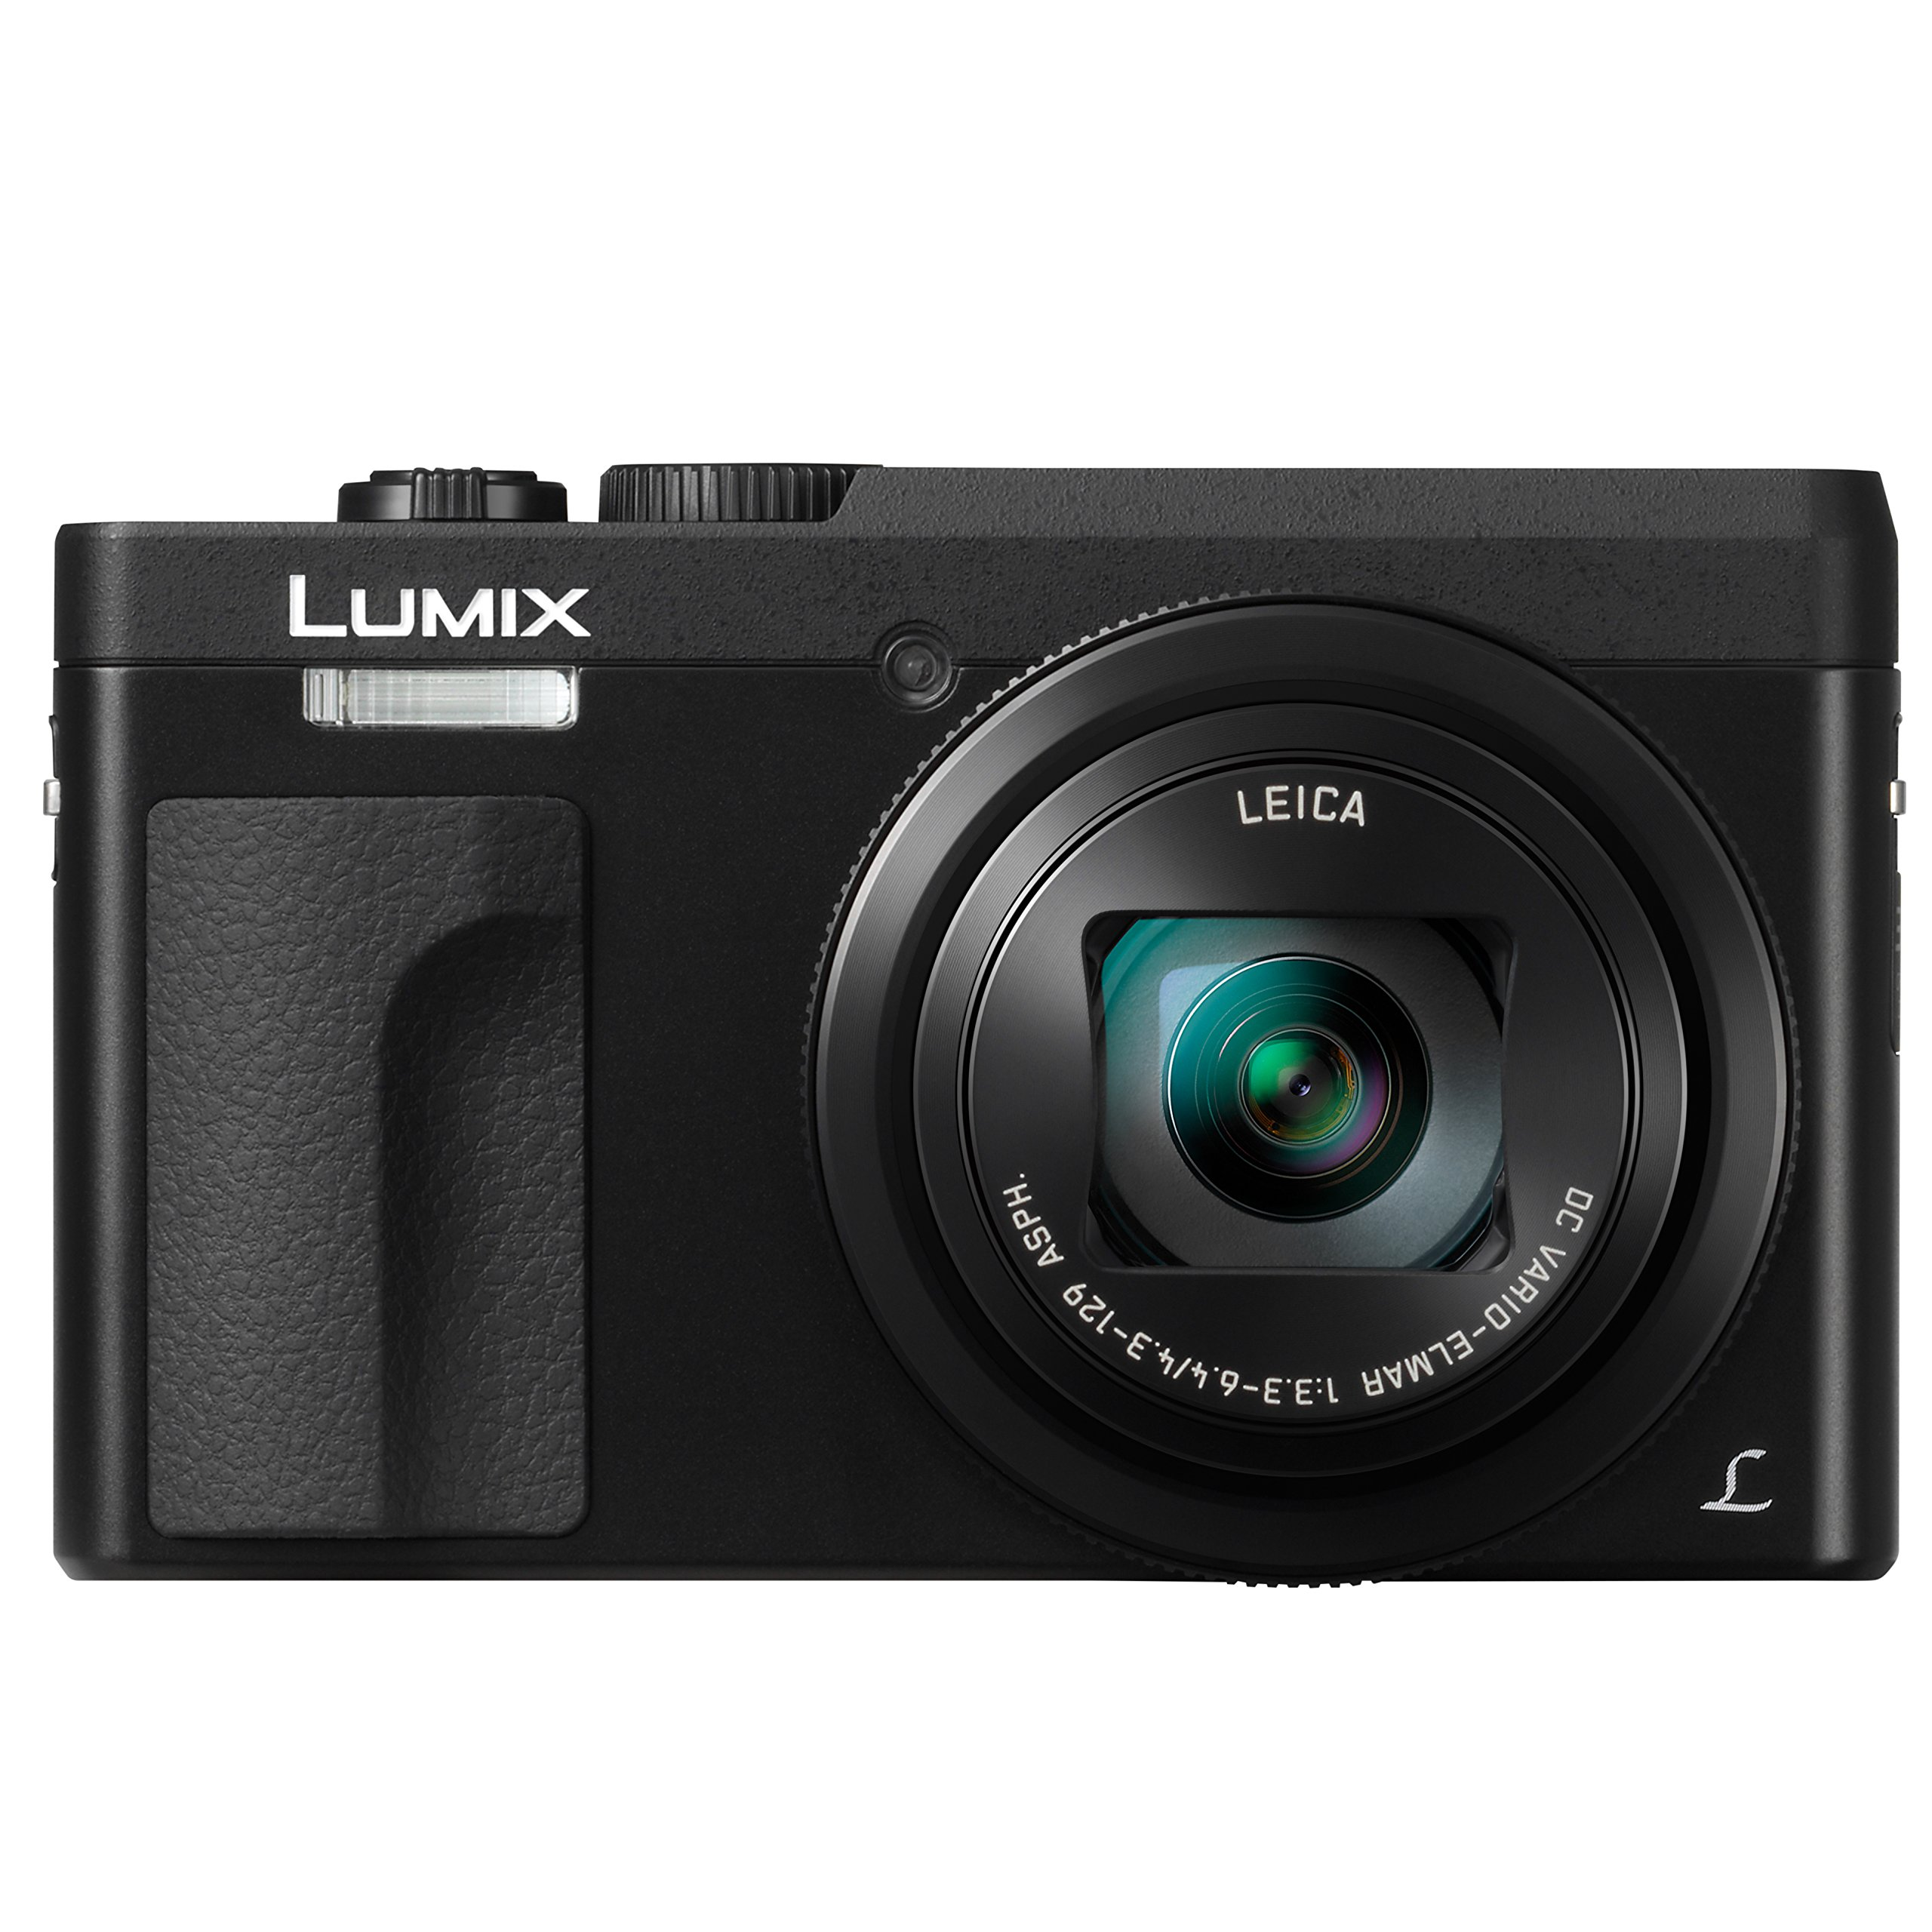 PANASONIC LUMIX DC-ZS70K, 20.3 Megapixel, 4K Digital Camera, Touch Enabled 3-inch 180 Degree Flip-front Display, 30X LEICA DC VARIO-ELMAR Lens, WiFi (Black) by Panasonic